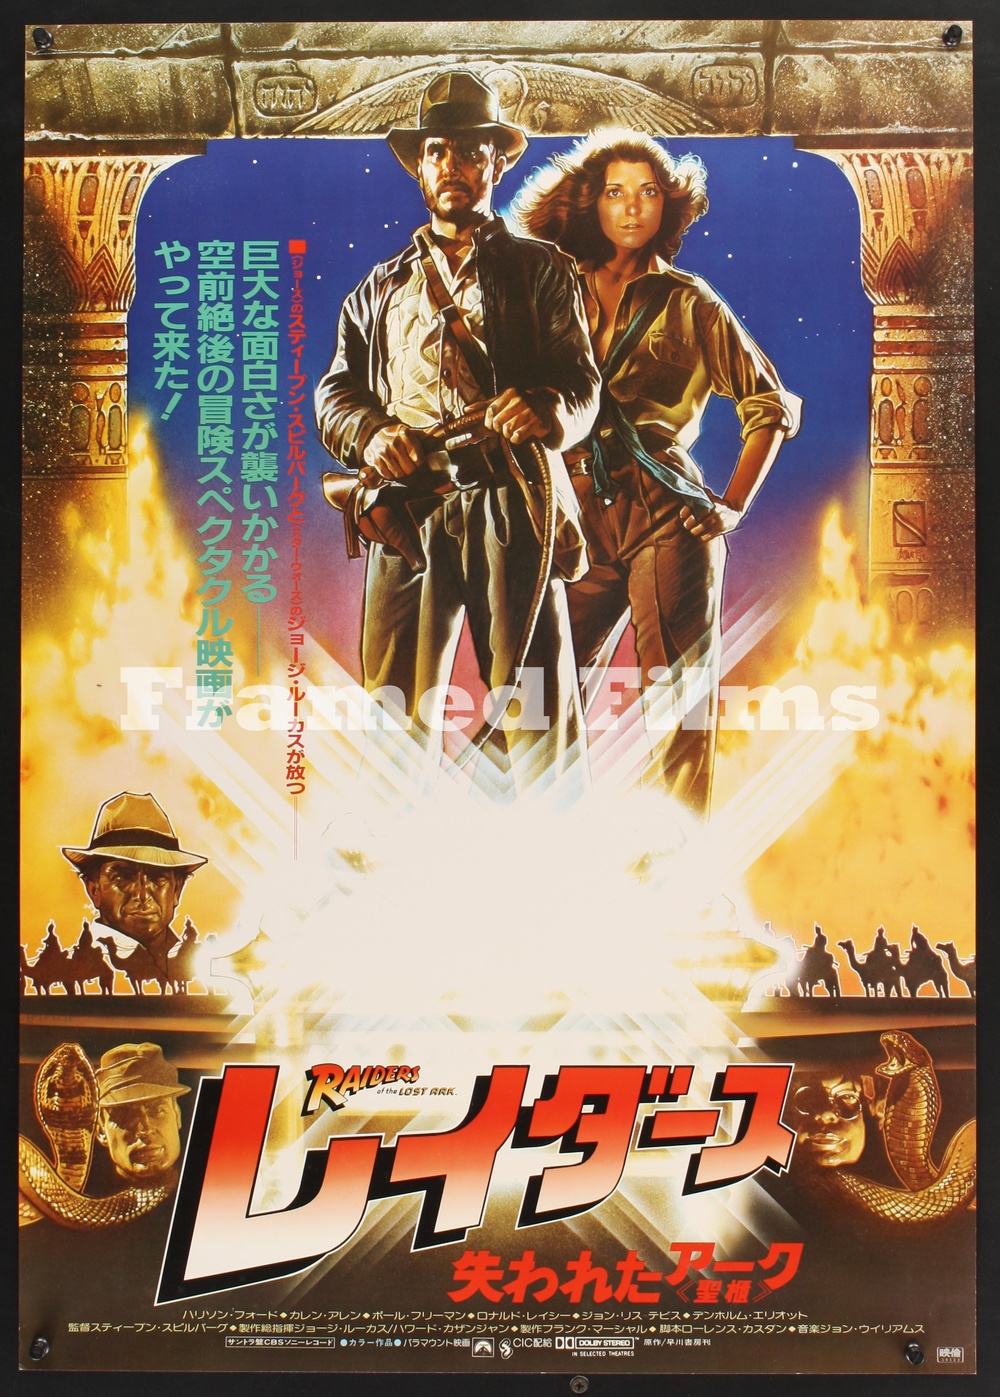 japanese_b2_raiders_of_the_lost_ark_art_style_WA02649_L.jpg